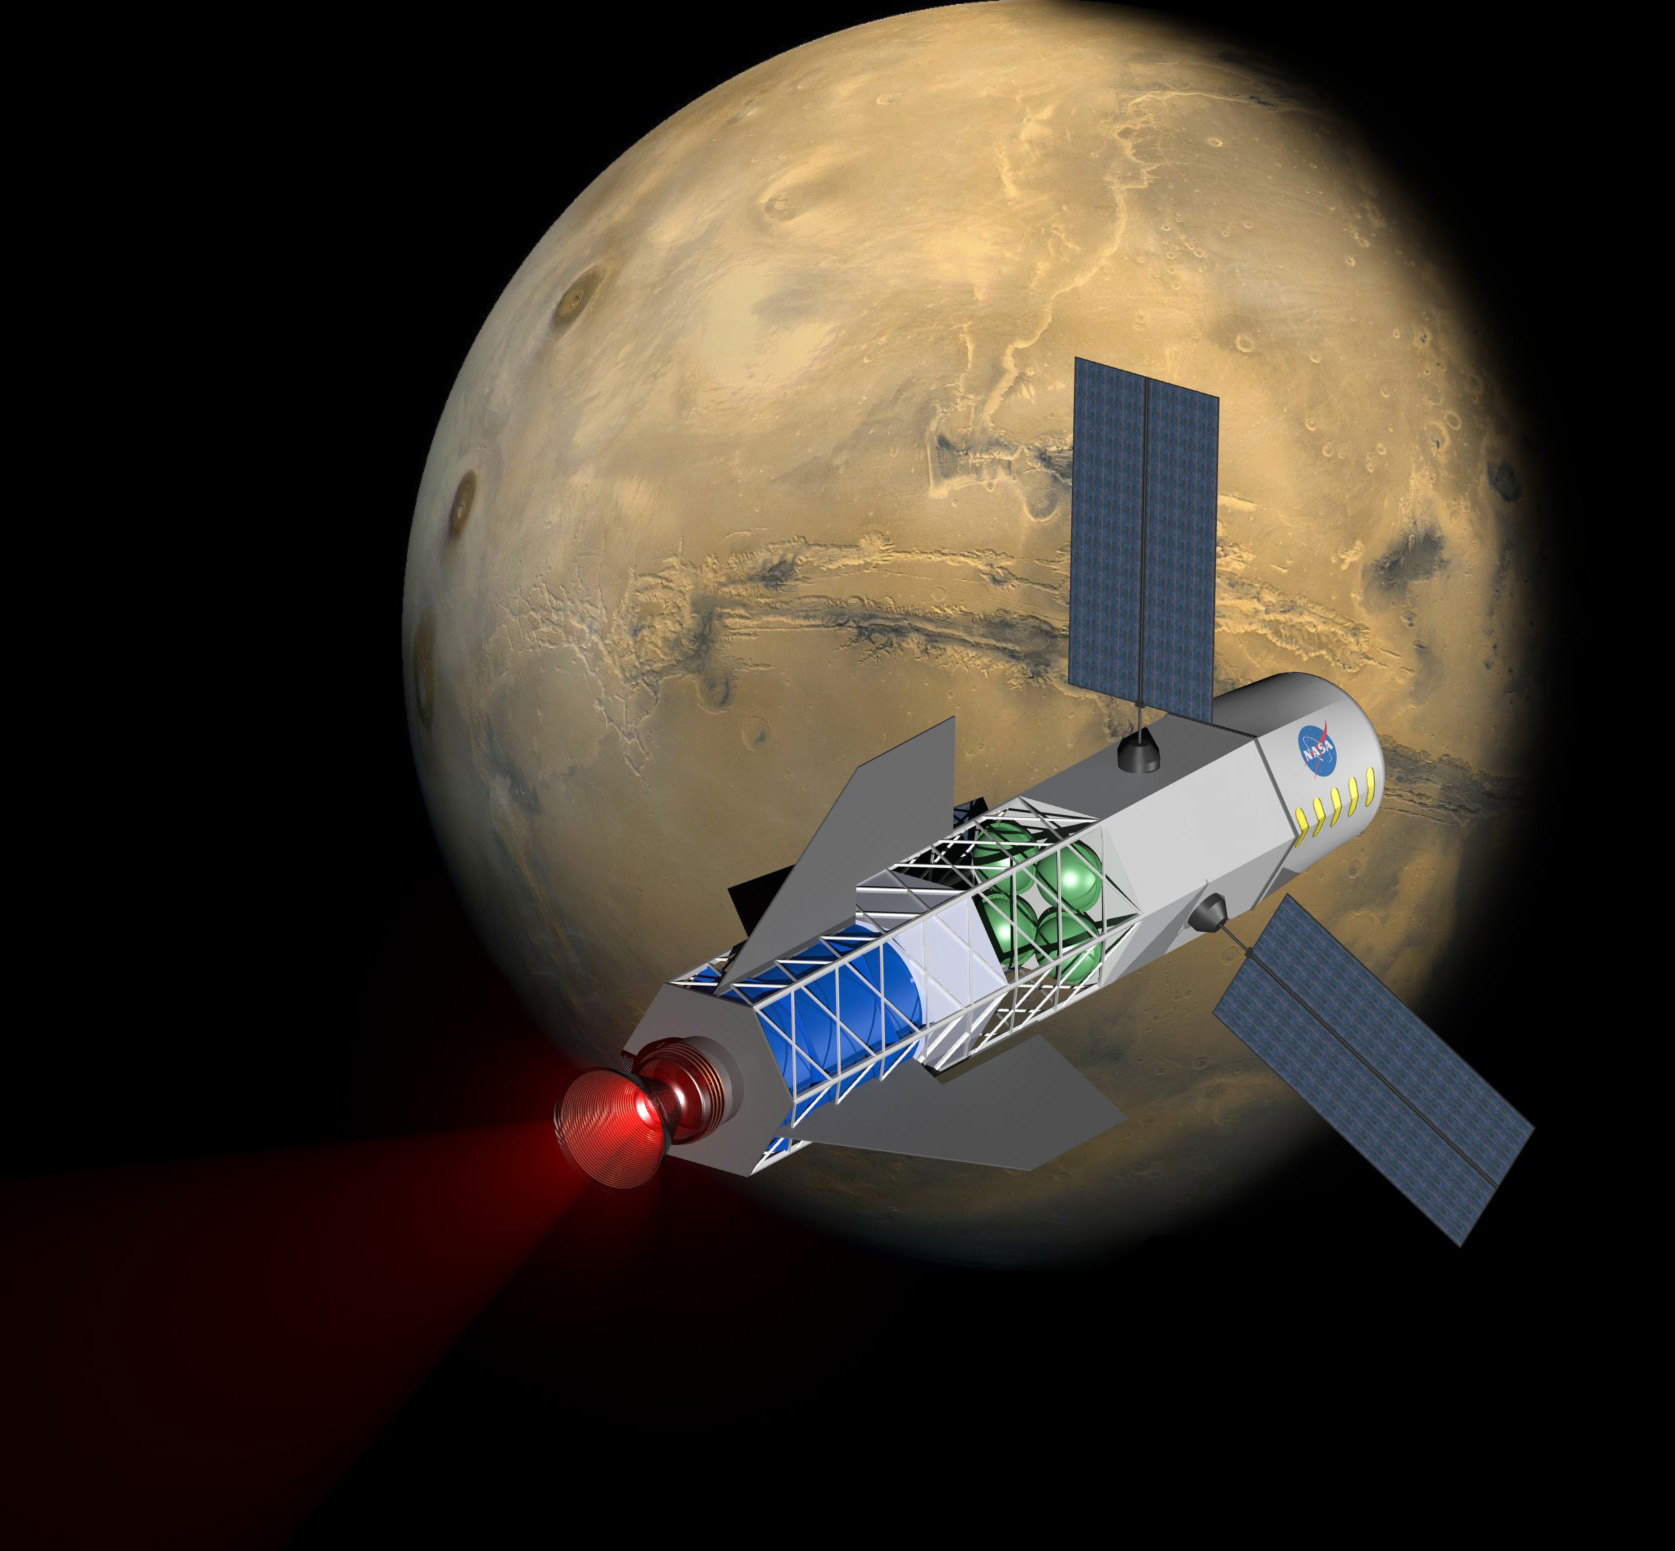 Quick Fusion-Powered Trips to Mars No Fantasy, Scientists Say